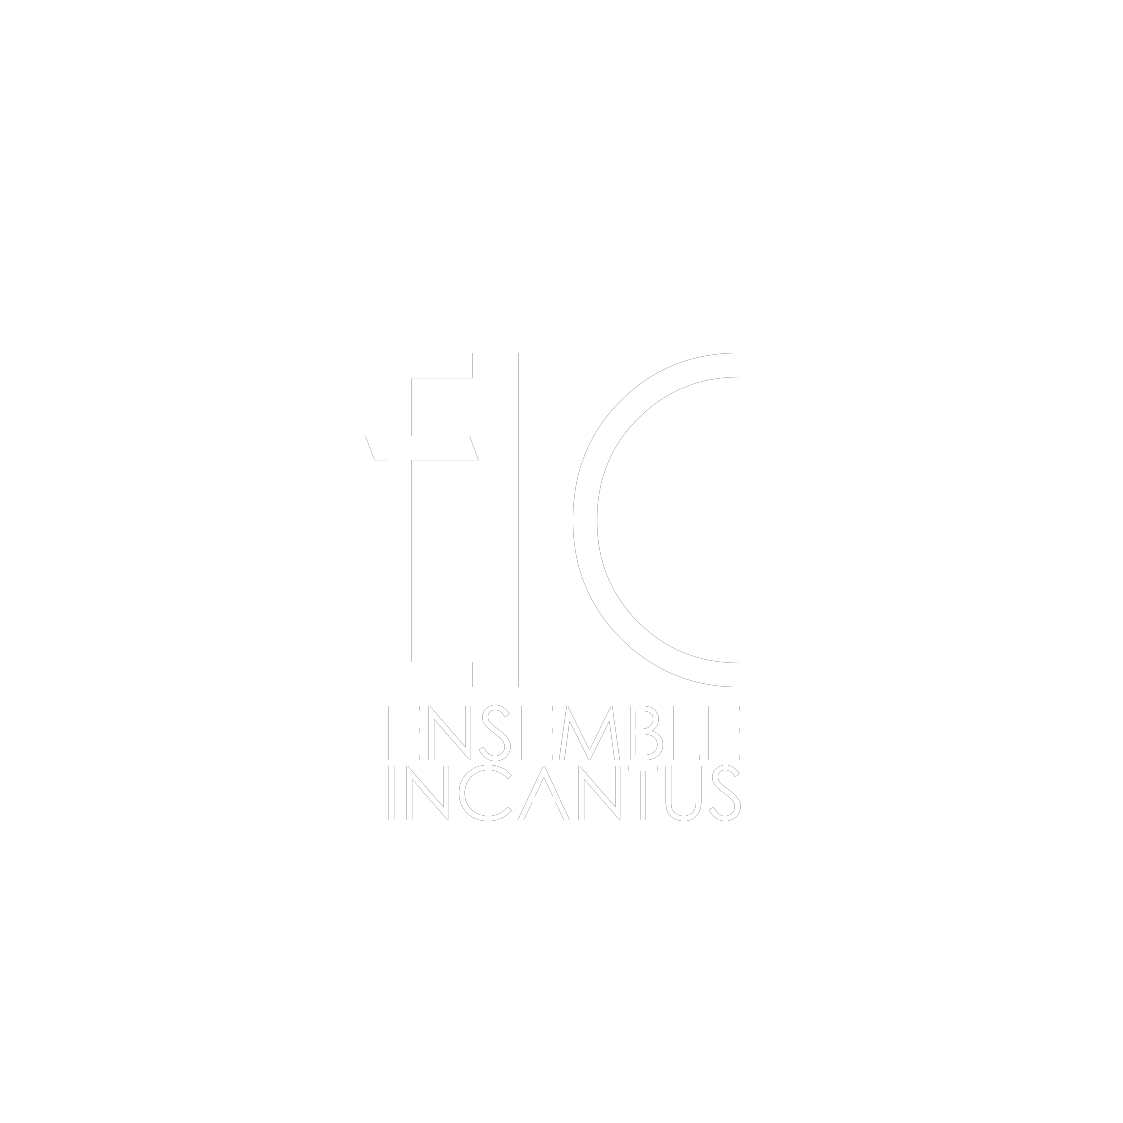 Logo Ensemble InCantus